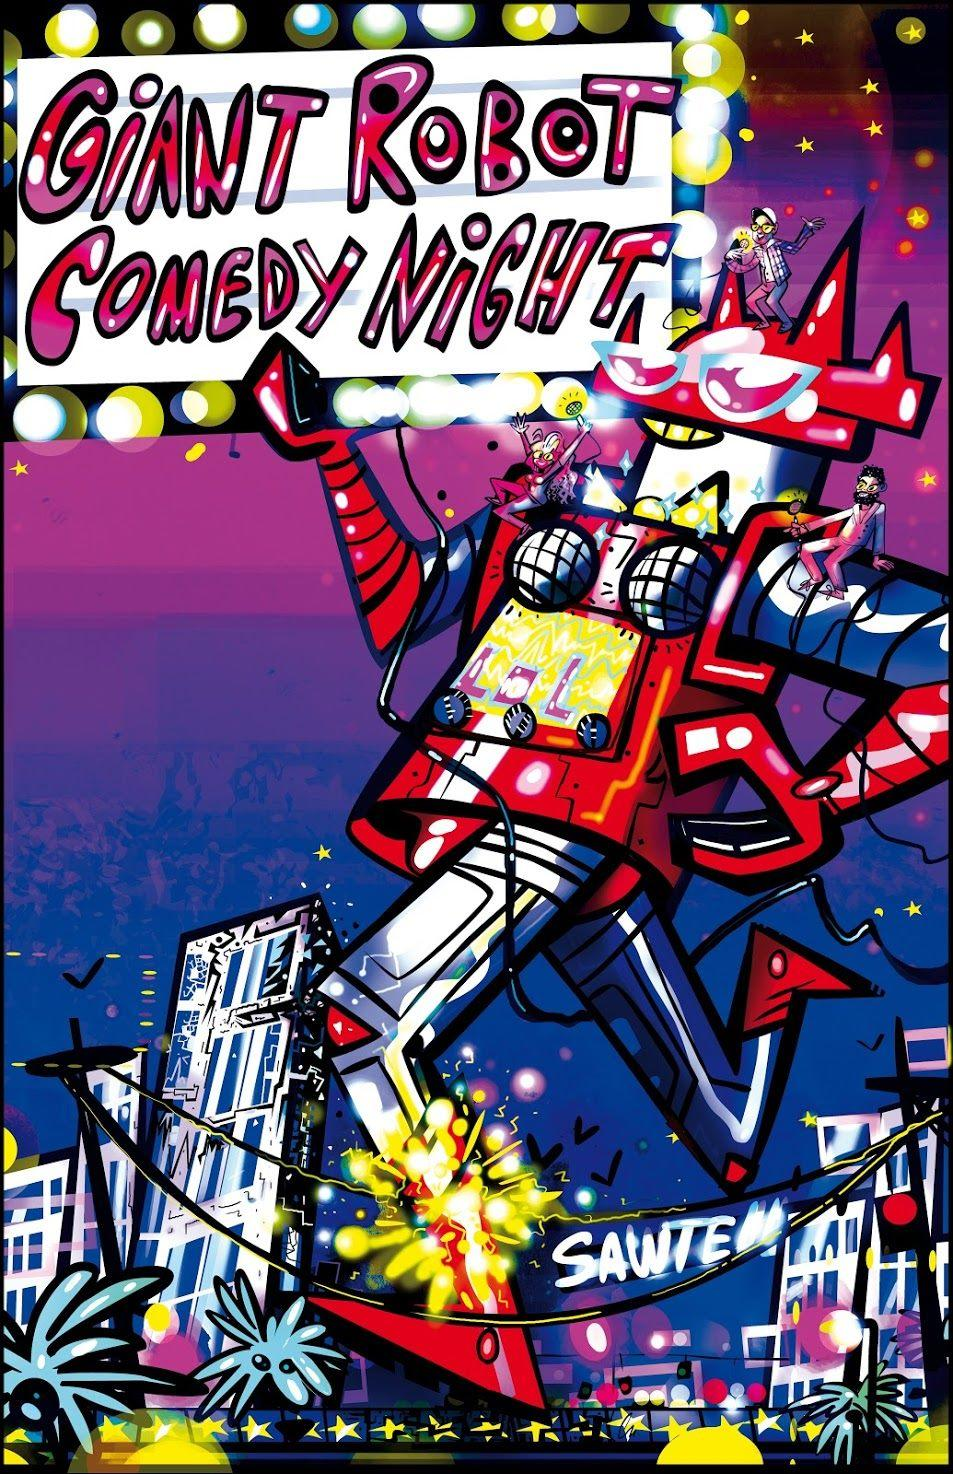 Giant Robot Comedy Night